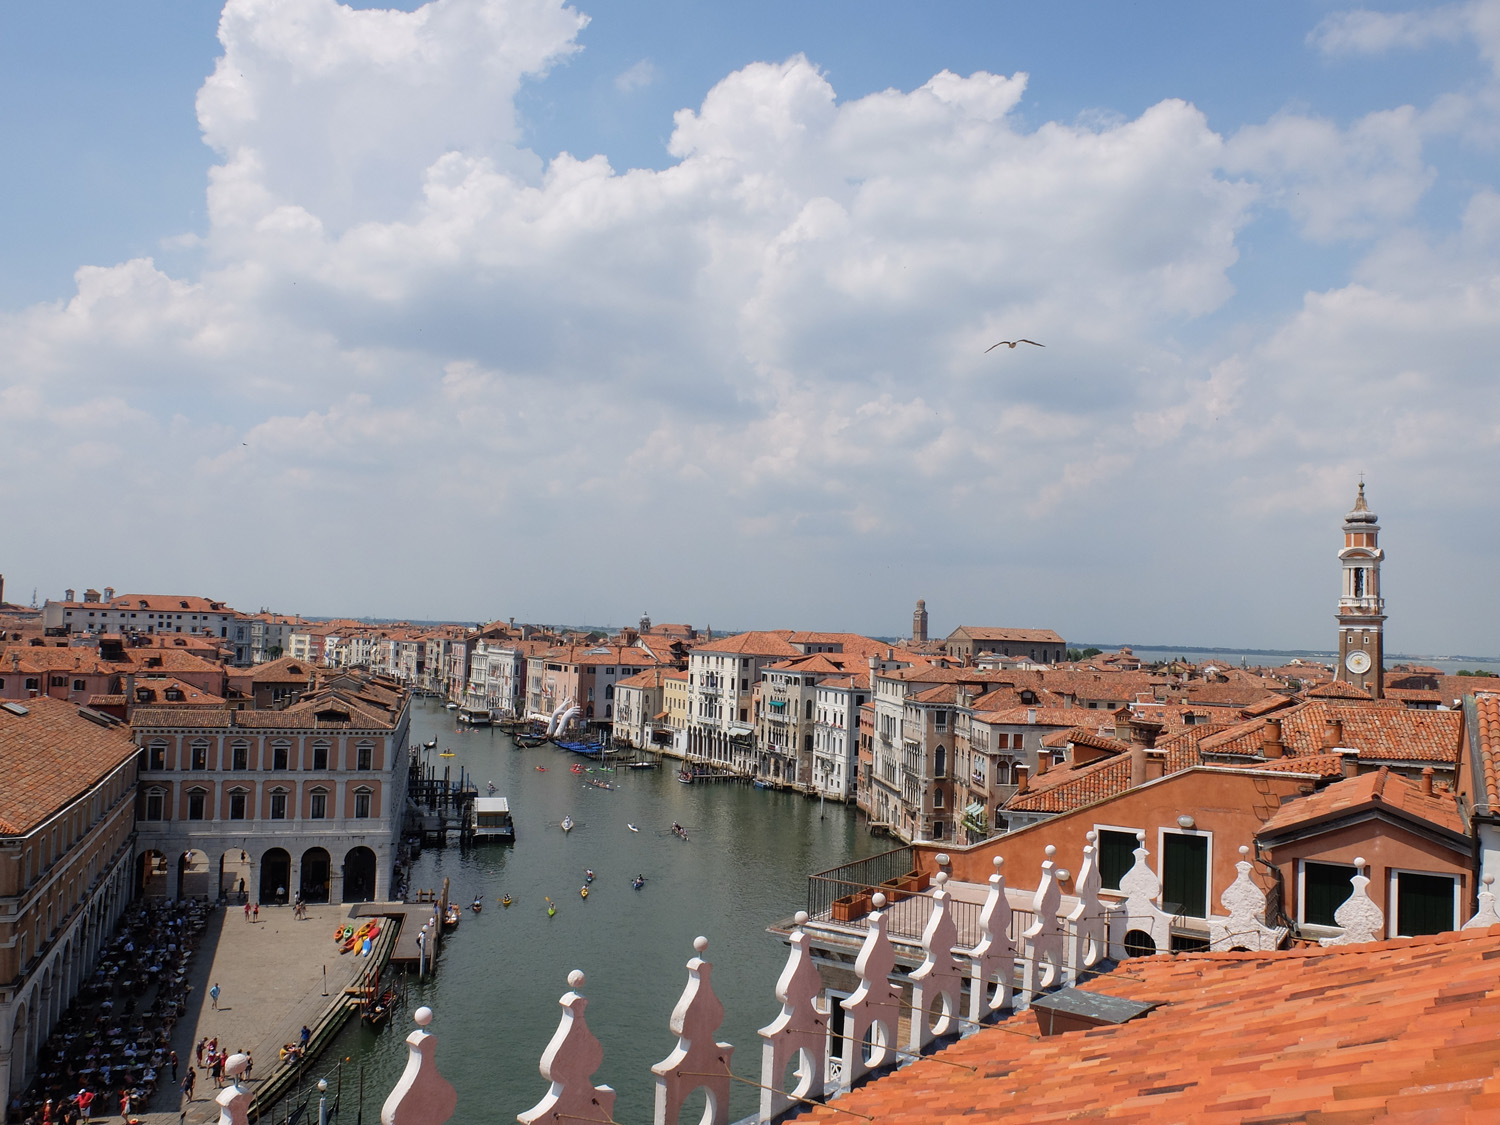 The view of Venice's grand canal from Fondaco dei Tedeschi